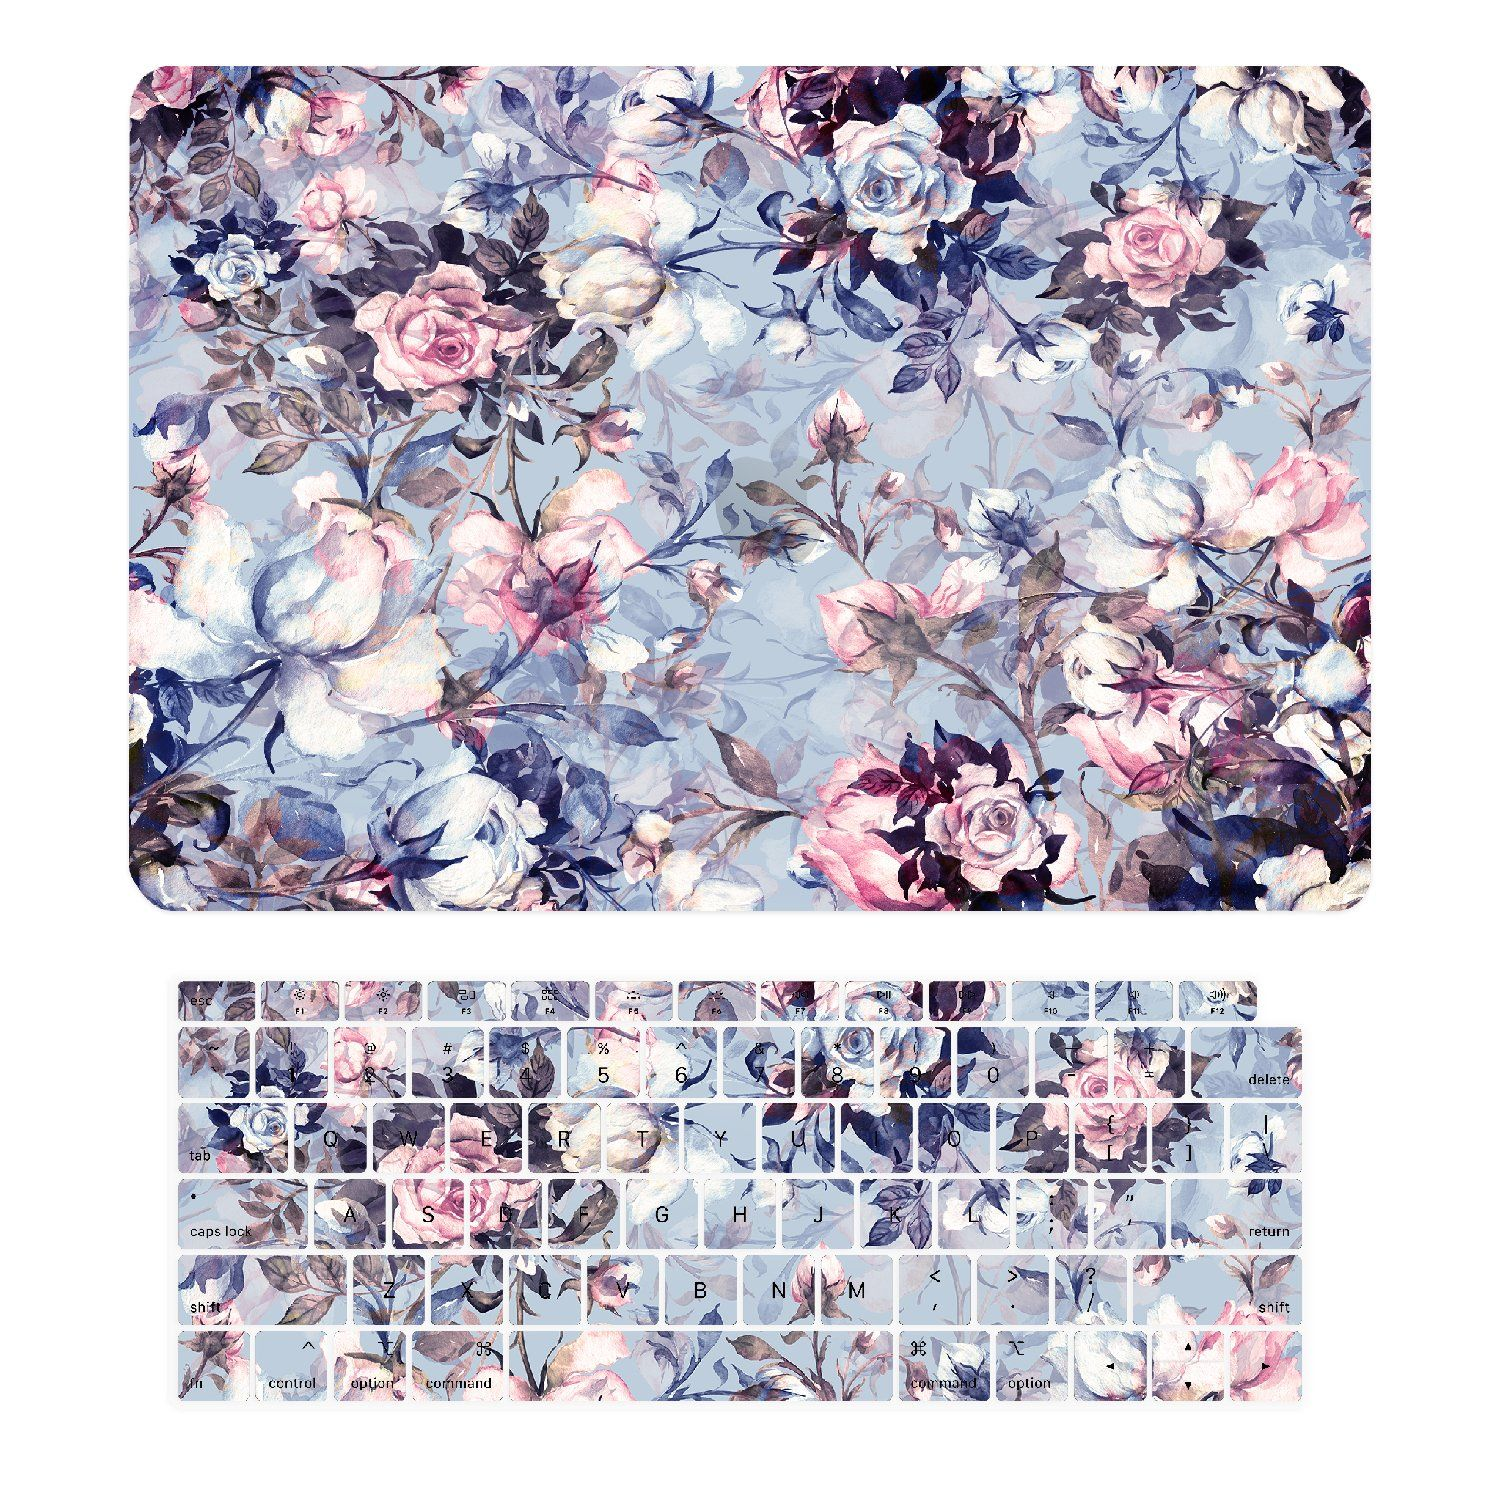 TOP CASE - 2 in 1 Victorian Series Graphics Rubberized Hard Case + Keyboard Cover Compatible with 2018 Release MacBook Air 13 Inch with Retina Display fits Touch ID Model: A1932 - Serenity Blue